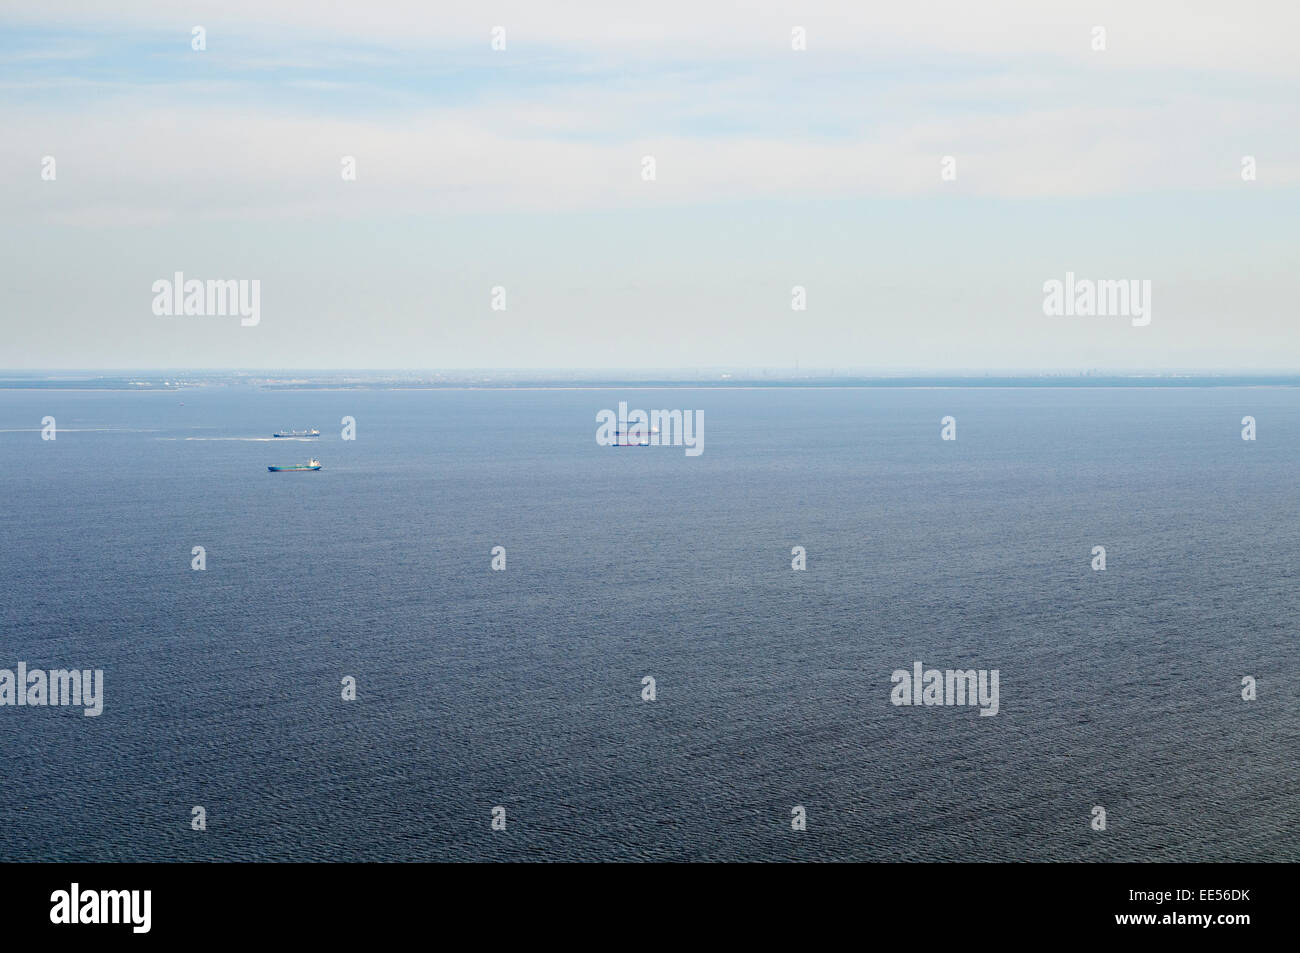 Ships riding at anchor in Gulf of Riga - Stock Image